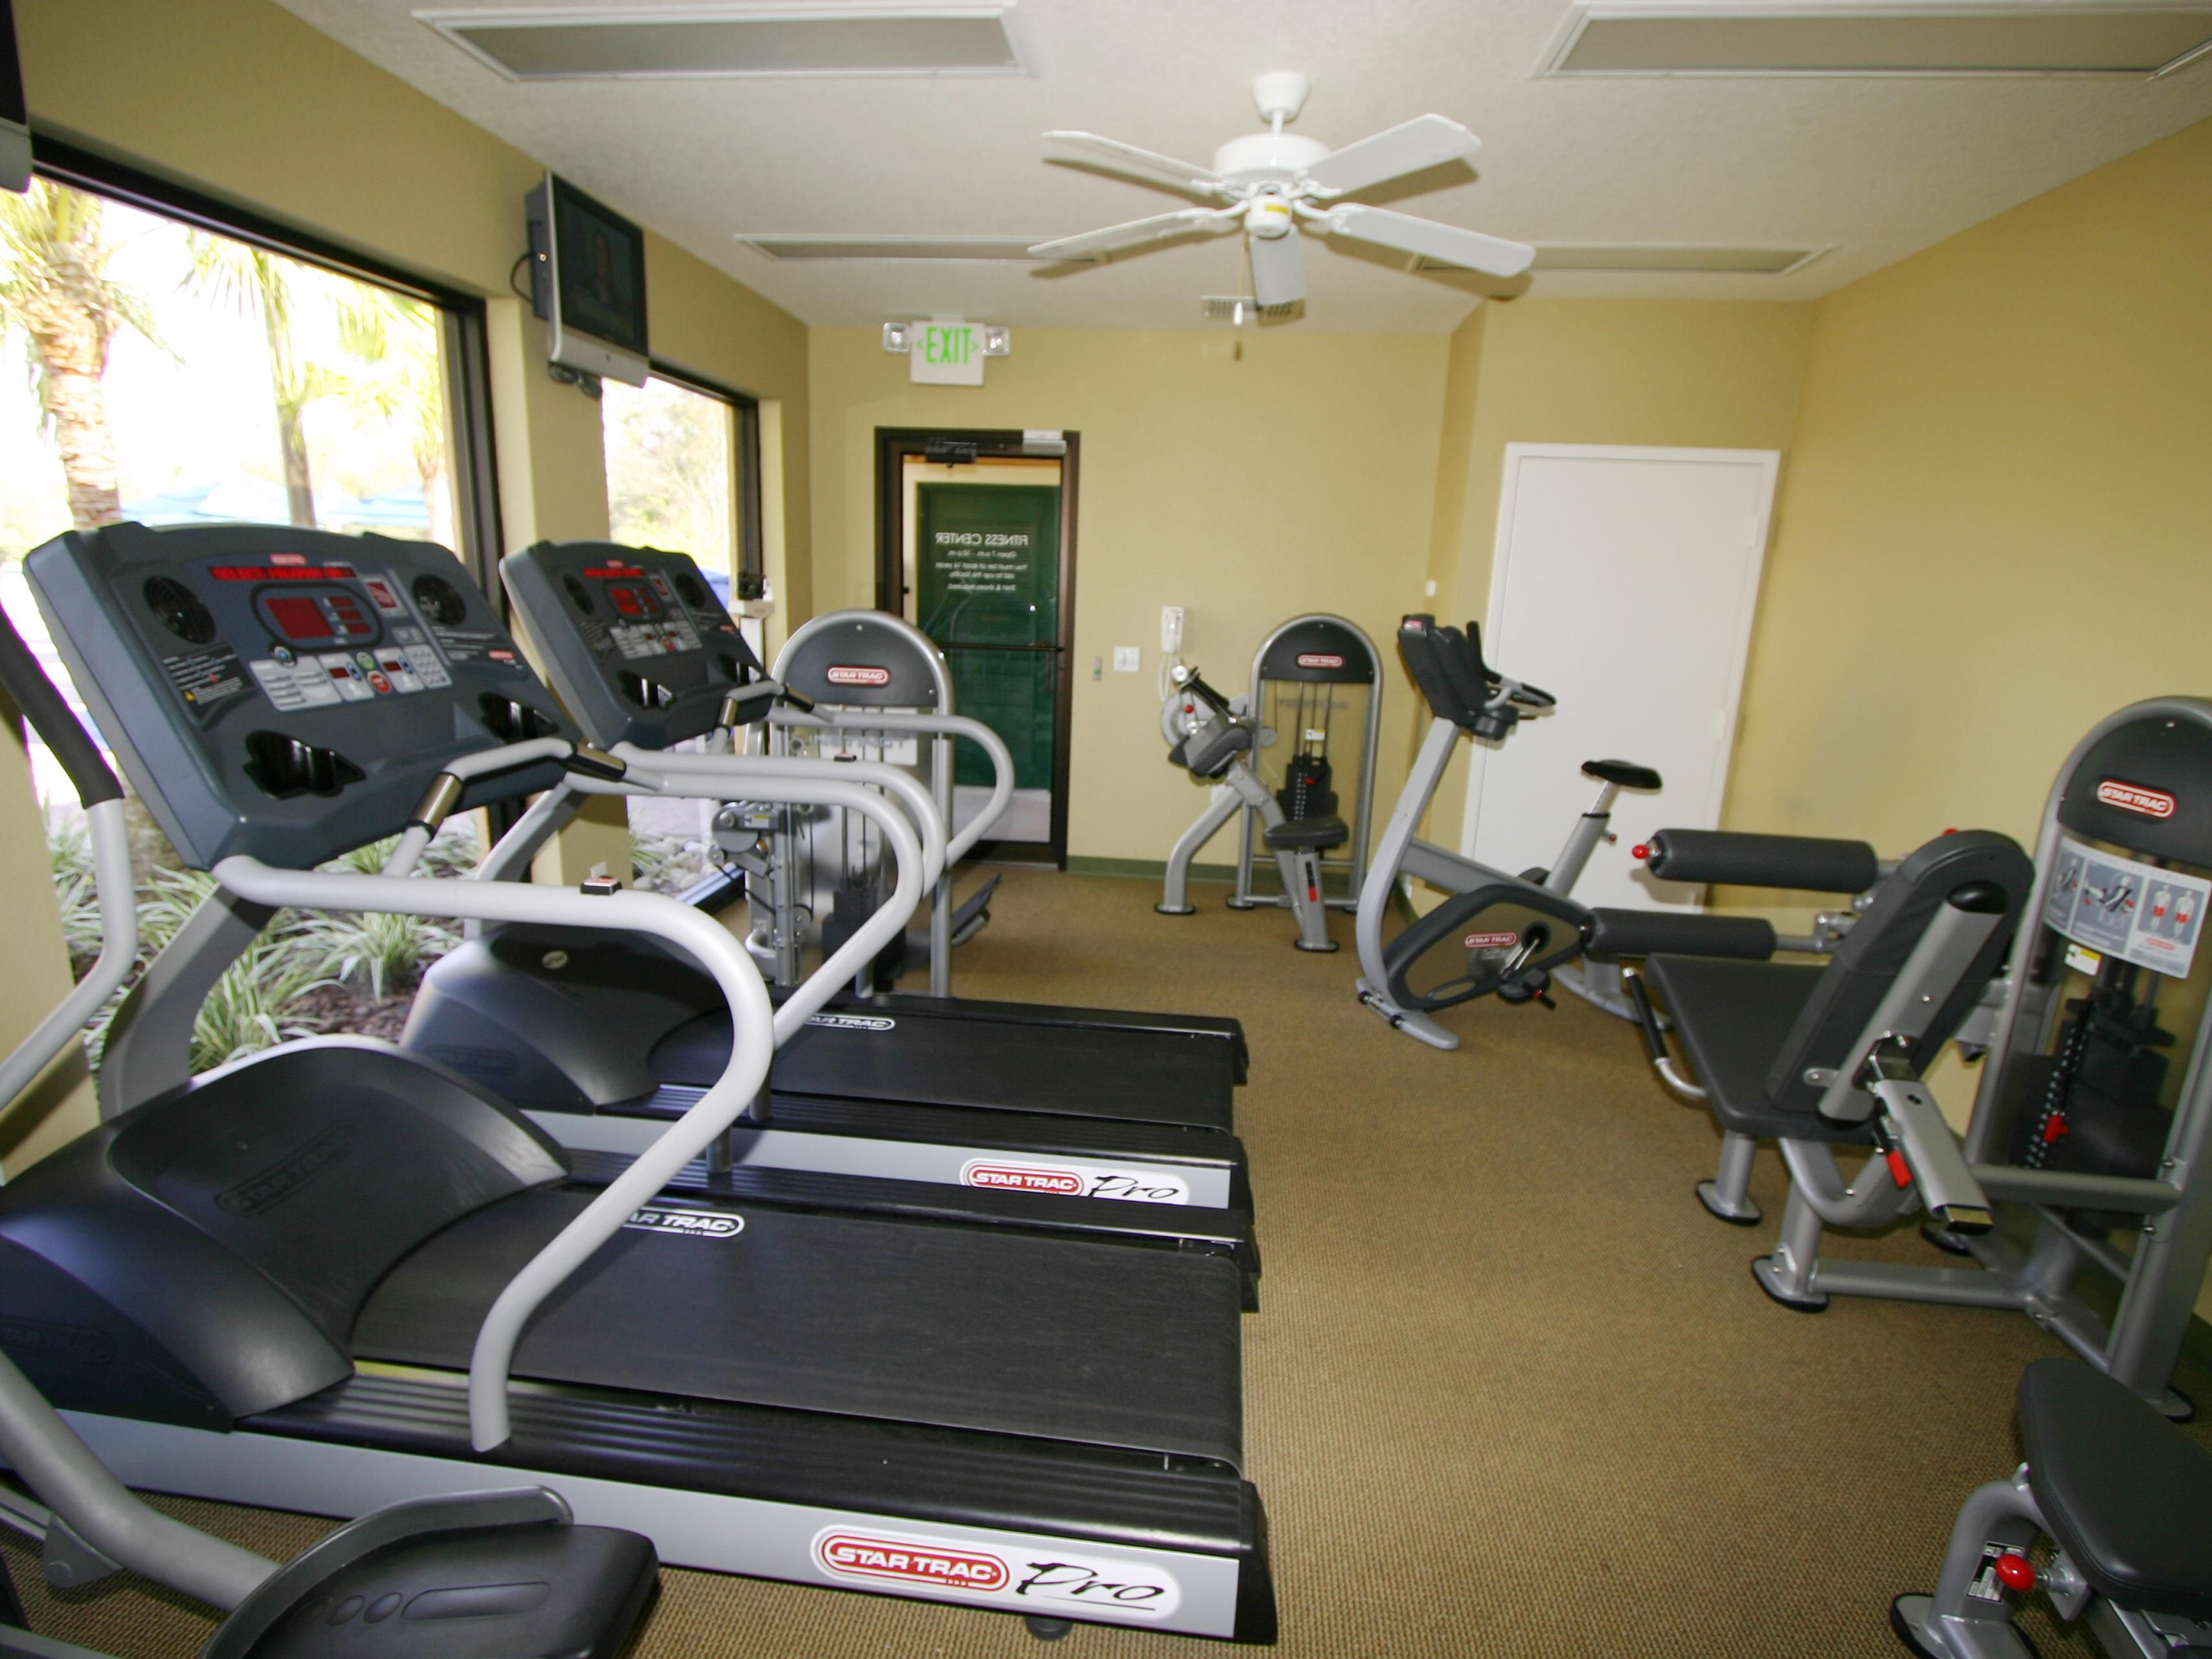 Fitness center for guests to use